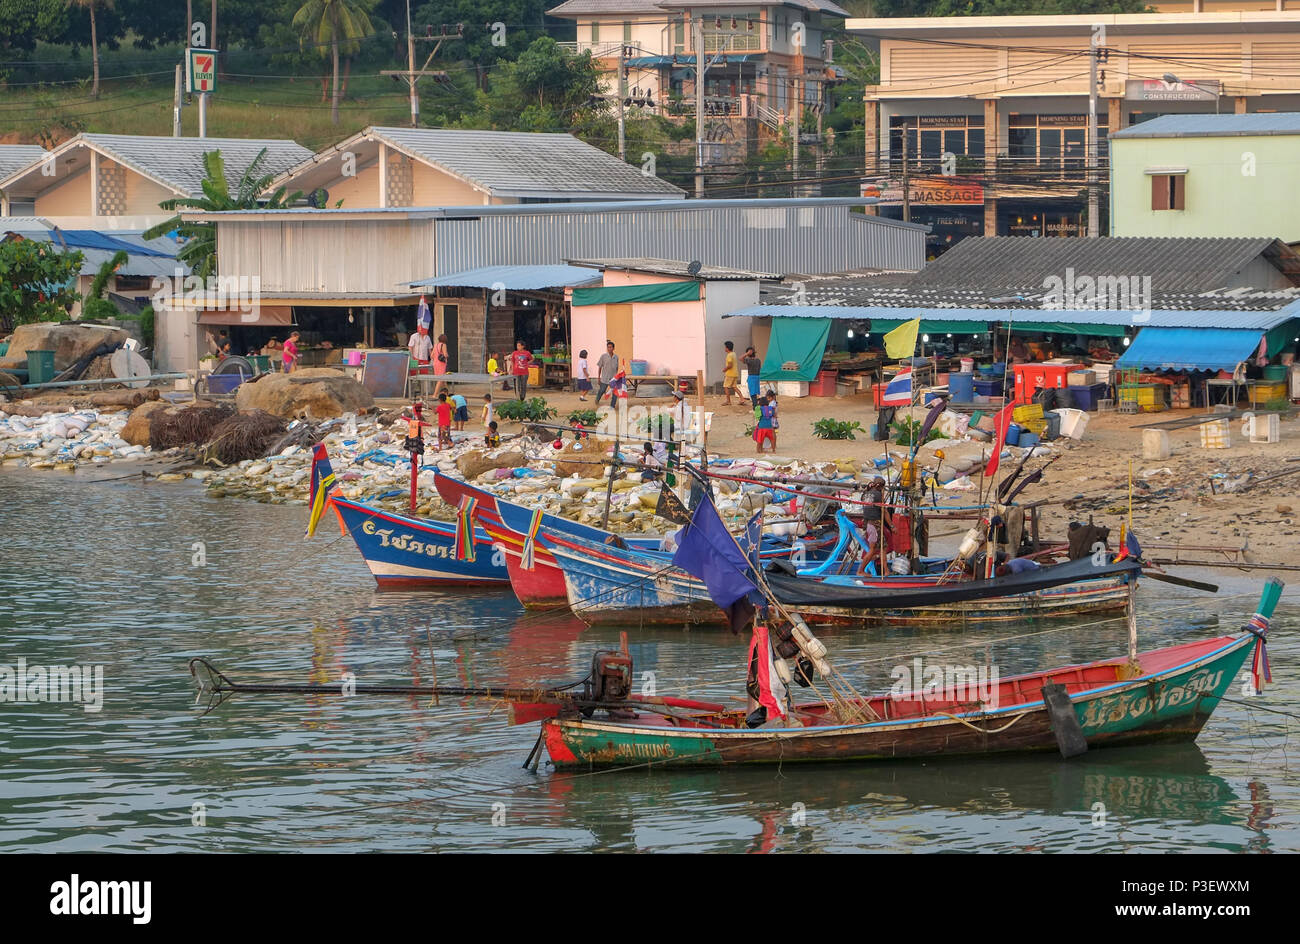 Thailand, Koh Samui, East Coast Baan Hua Thanon. A Muslim fishing village. Boats moored in harbour - Stock Image